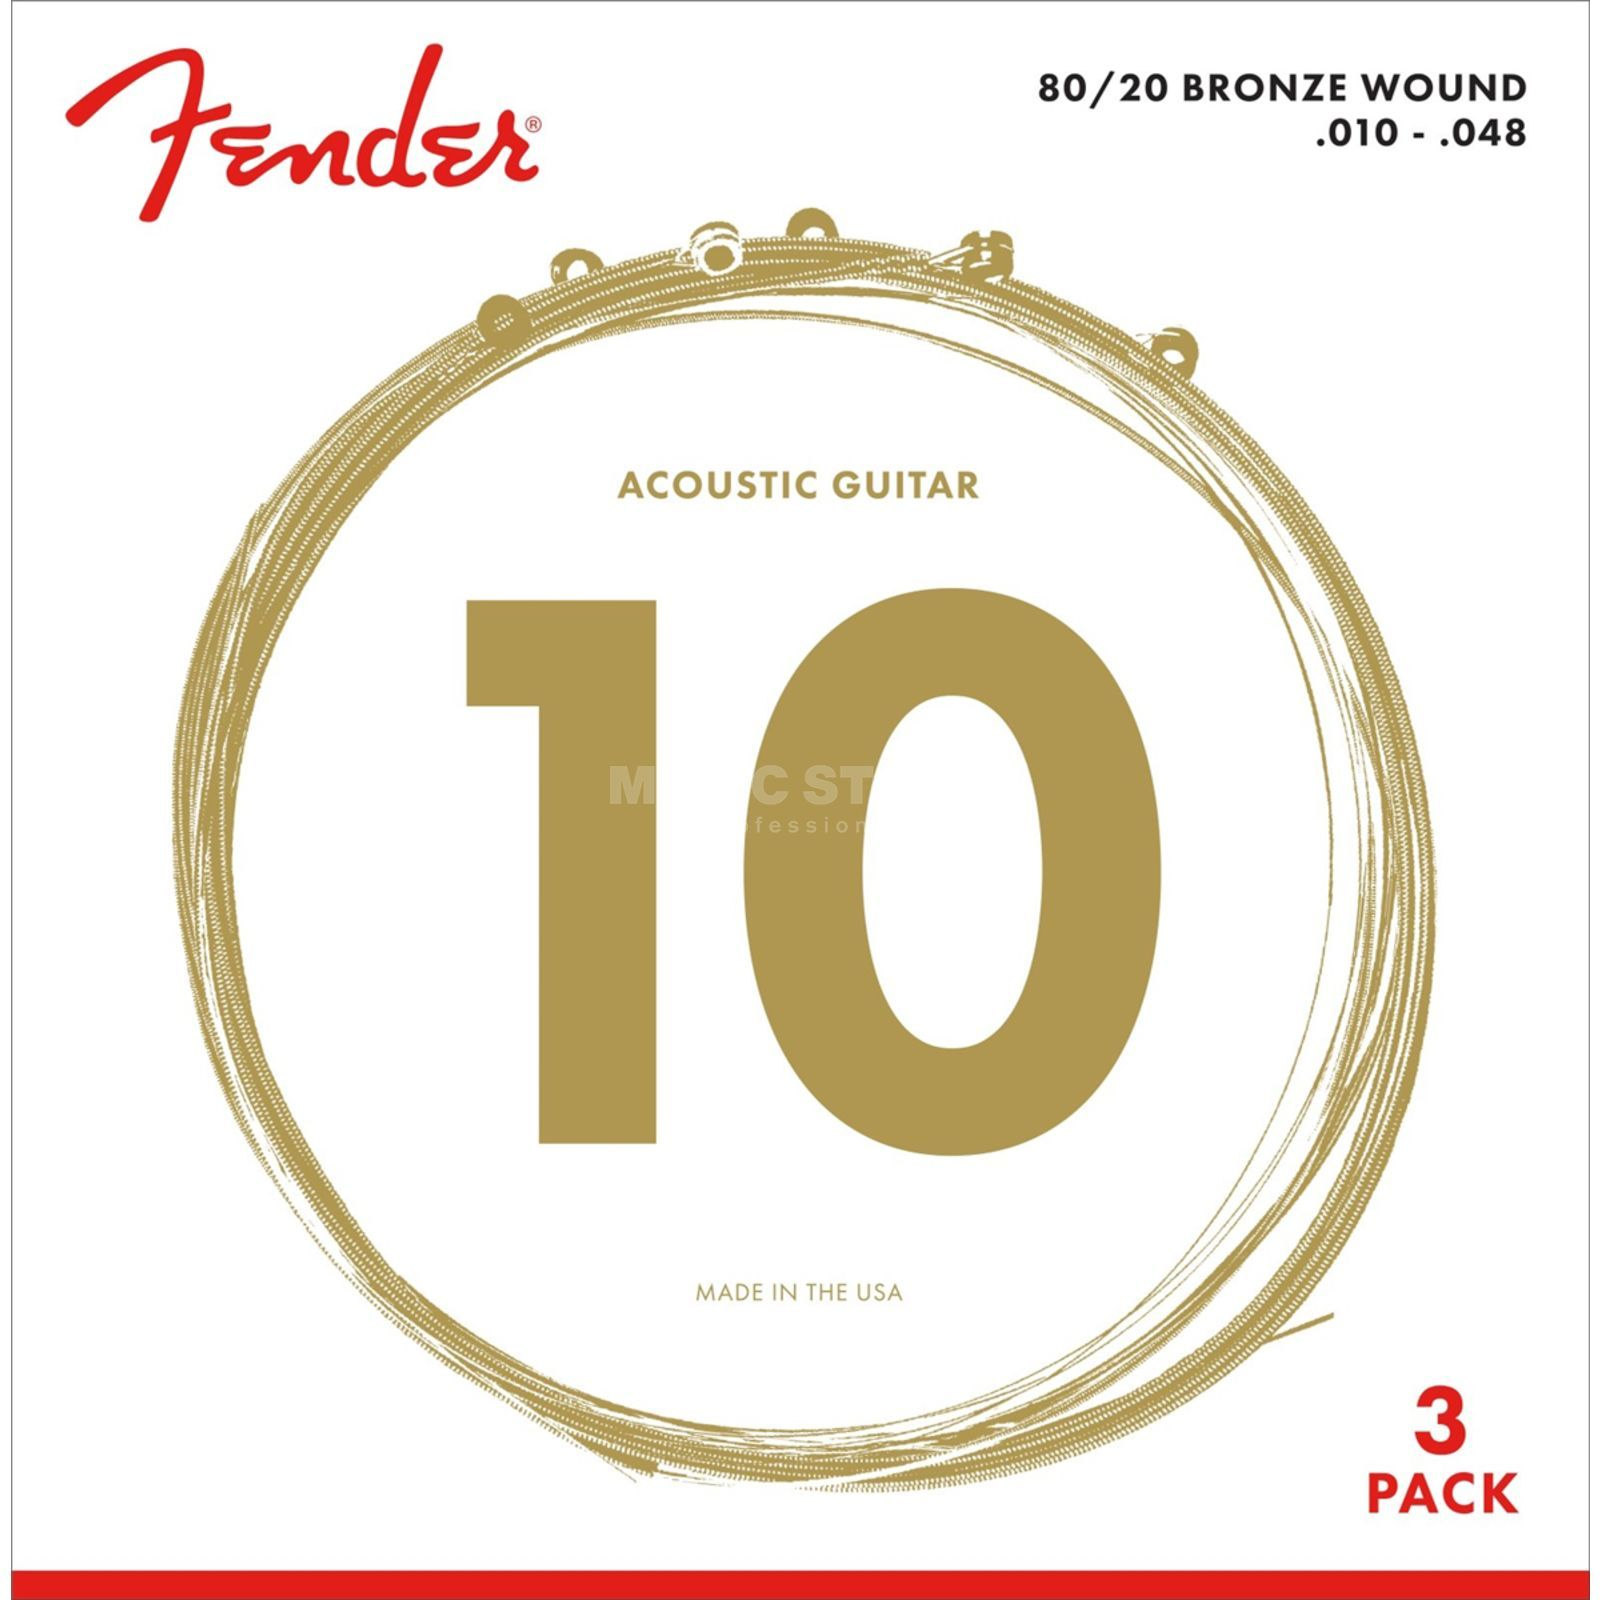 Fender A-Git. Saiten 70XL 10-48 3-Pack 80/20 Bronze Product Image